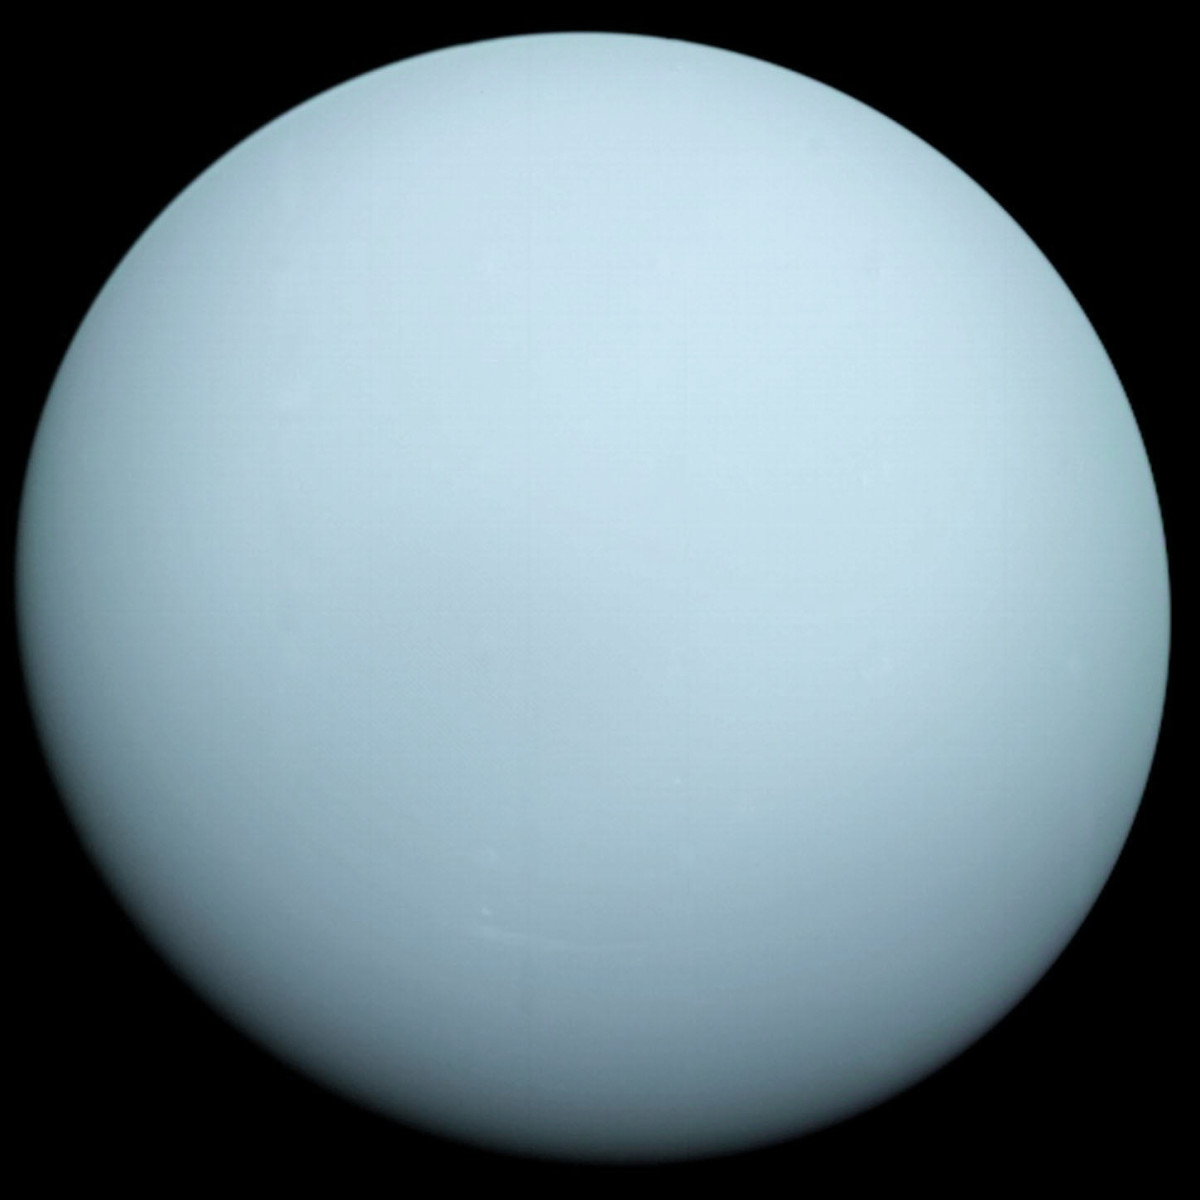 I combined Voyager 2's highest-resolution Uranus photo with the Hue from Hubble.